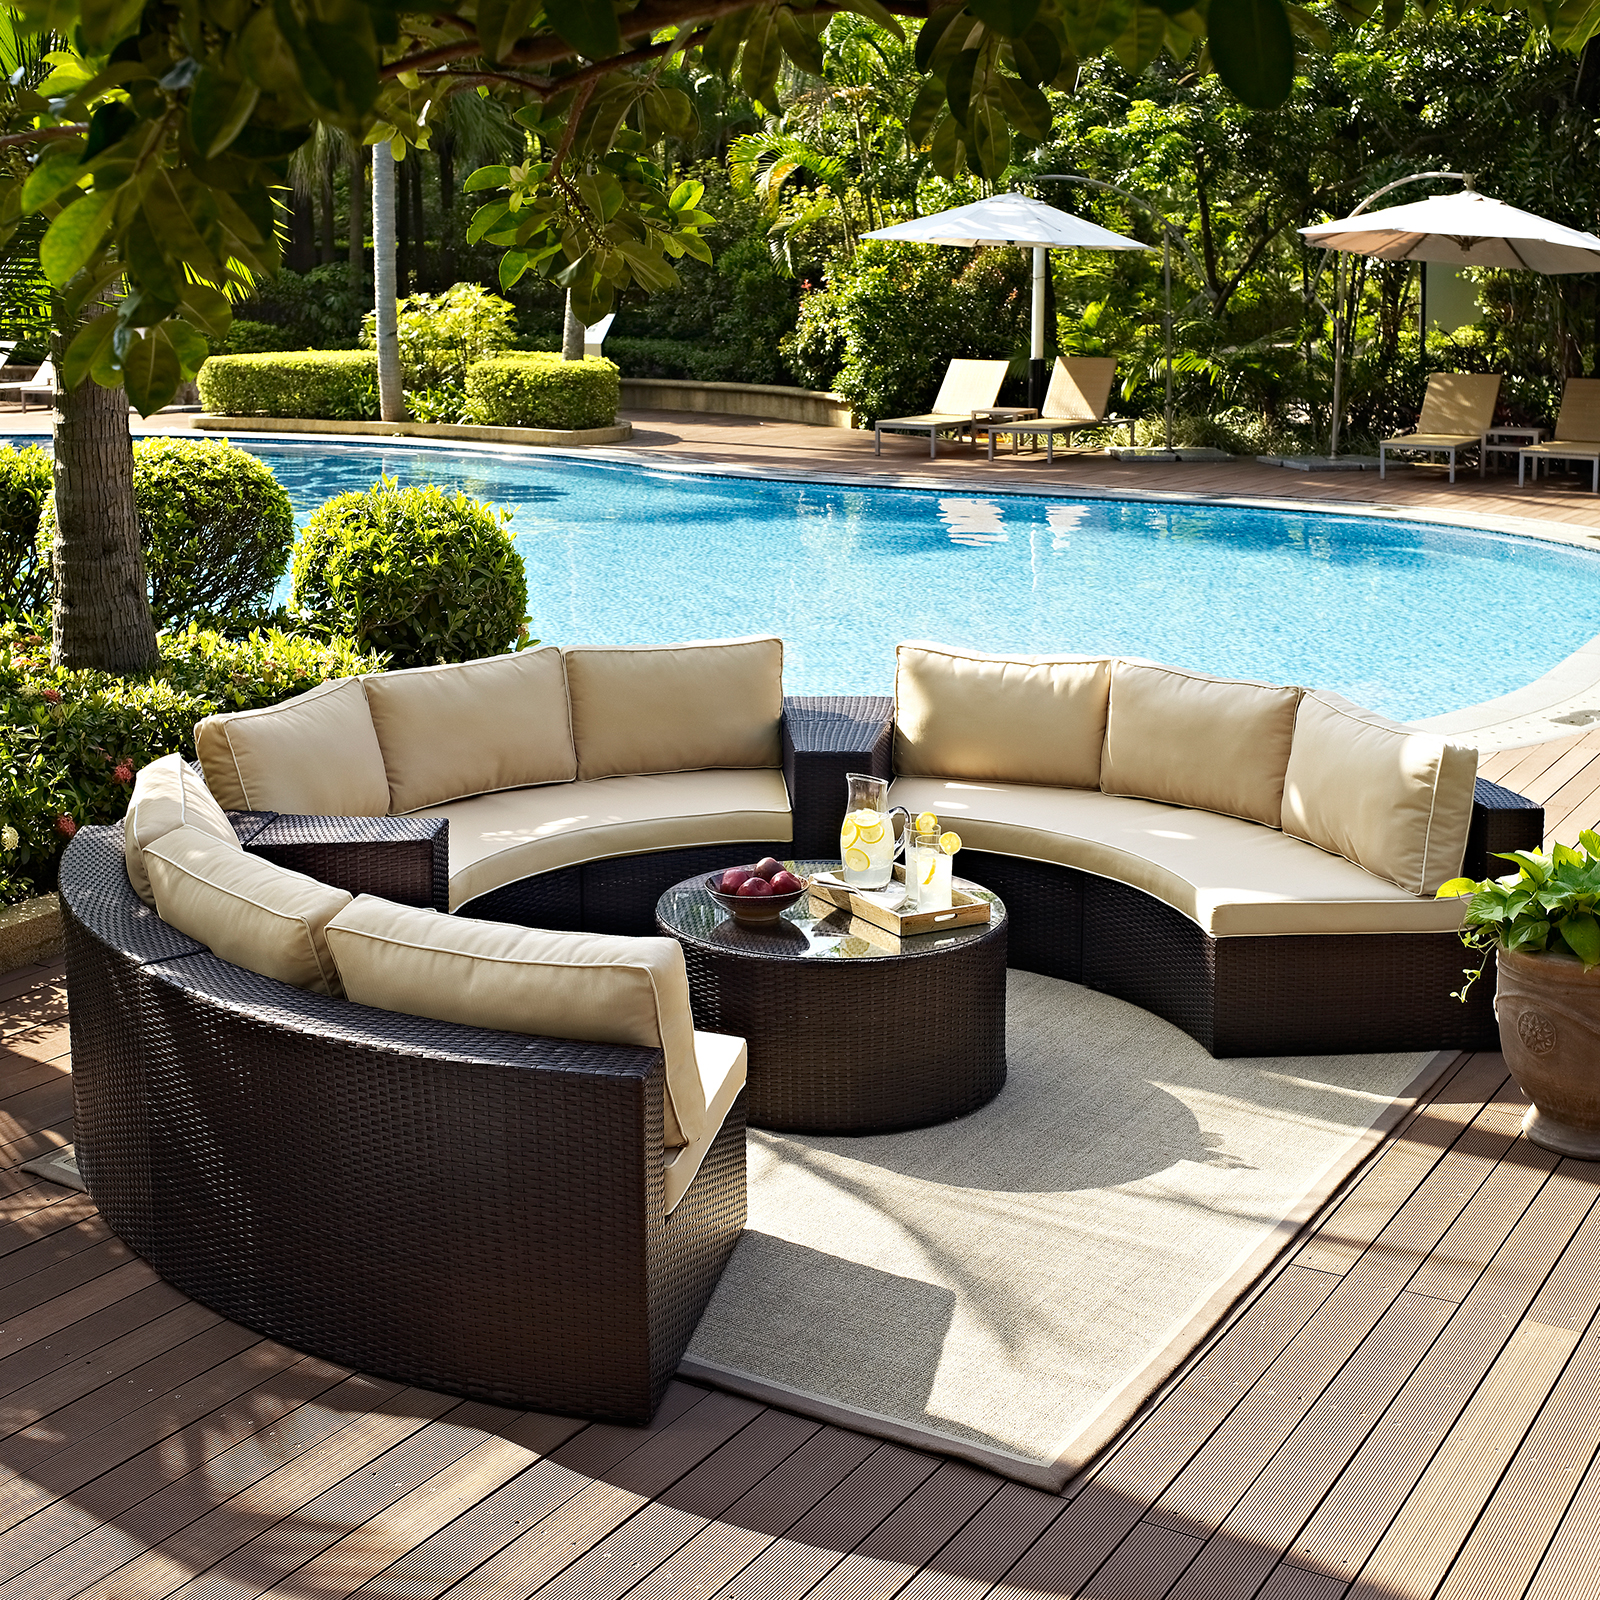 Crosley Catalina Outdoor Wicker Round Sectional Sofa With Coffee Table |  Hayneedle